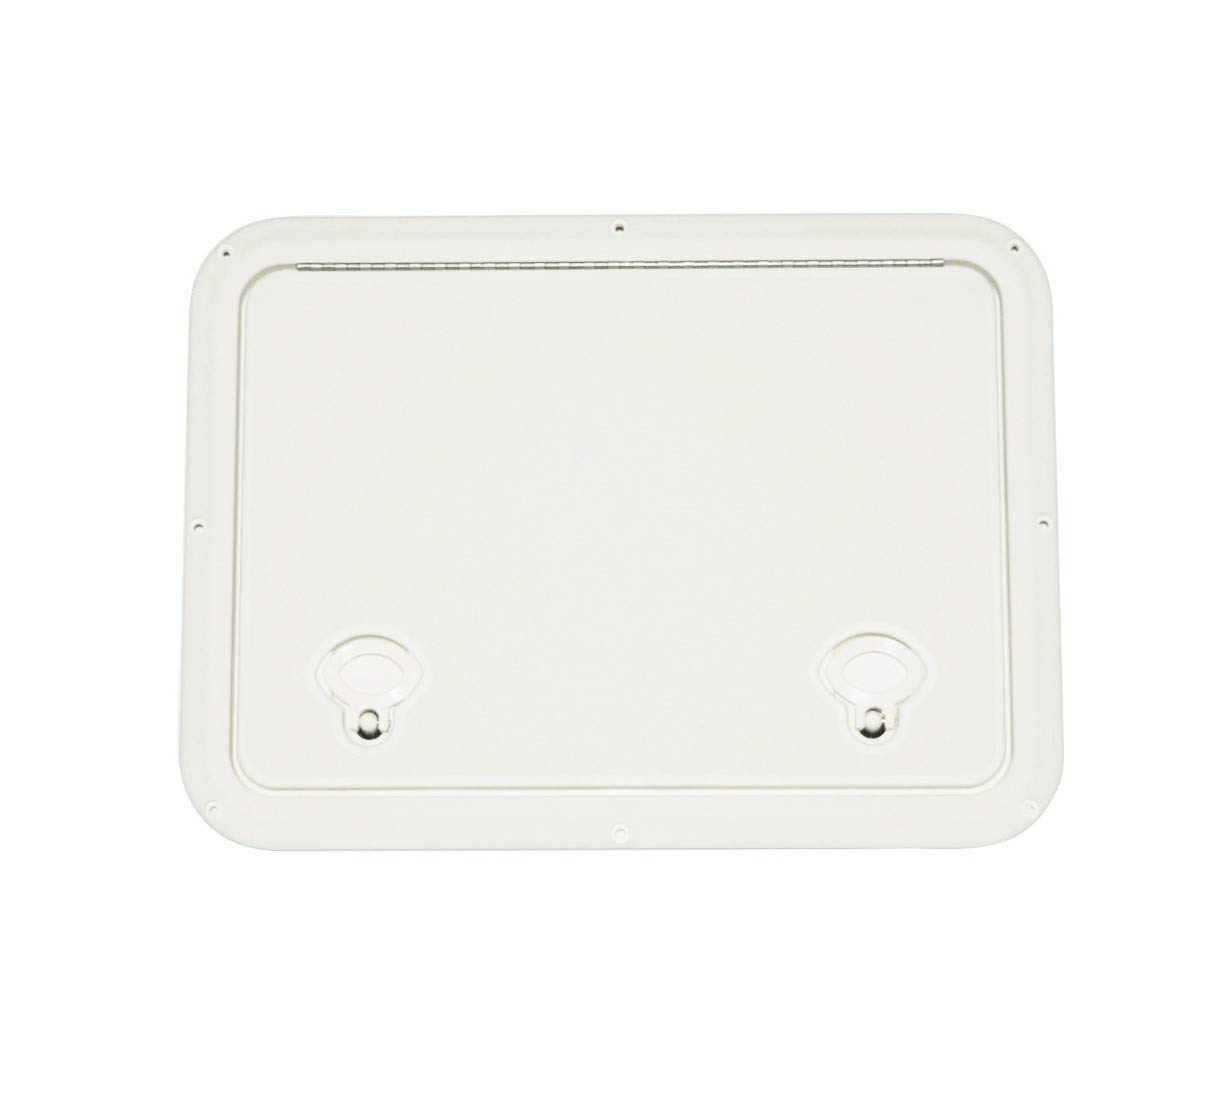 DPI Marine DPF1317PW DPF Flush Series Door by DPI Marine